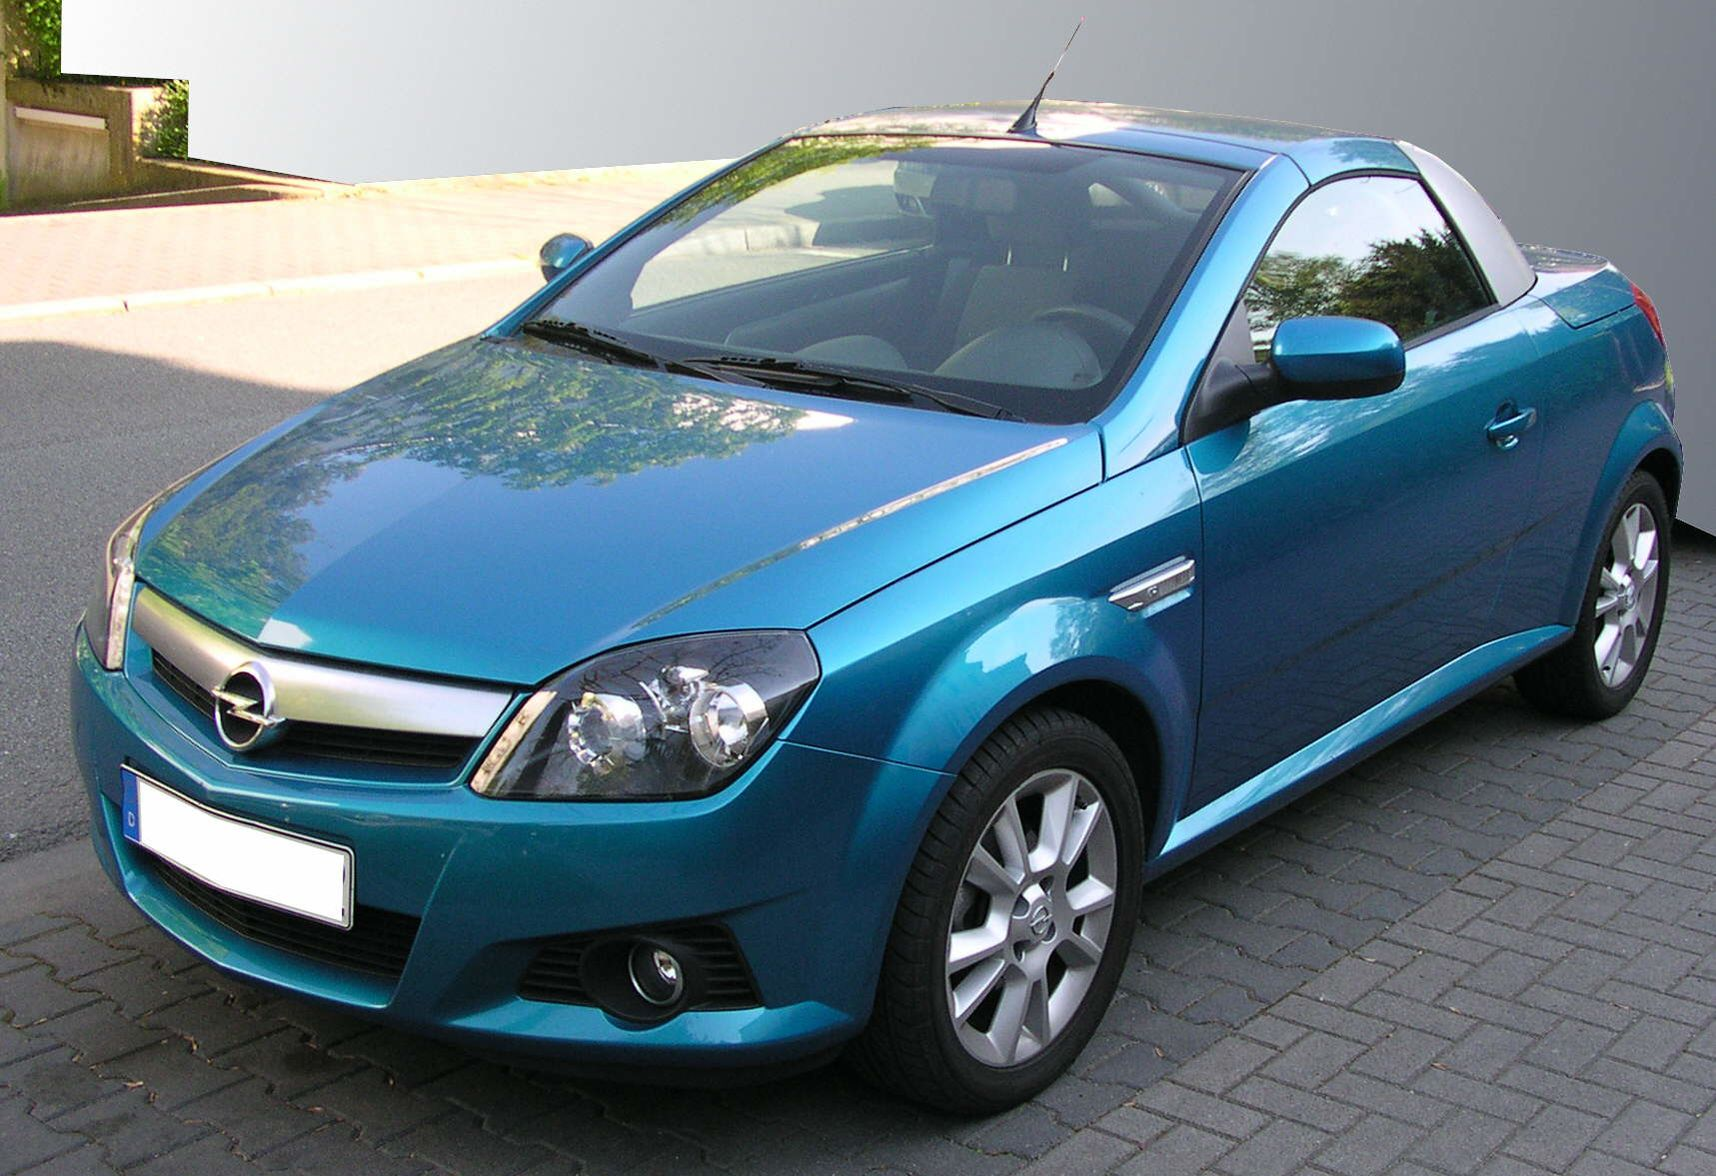 Opel Tigra - The complete information and online sale with free